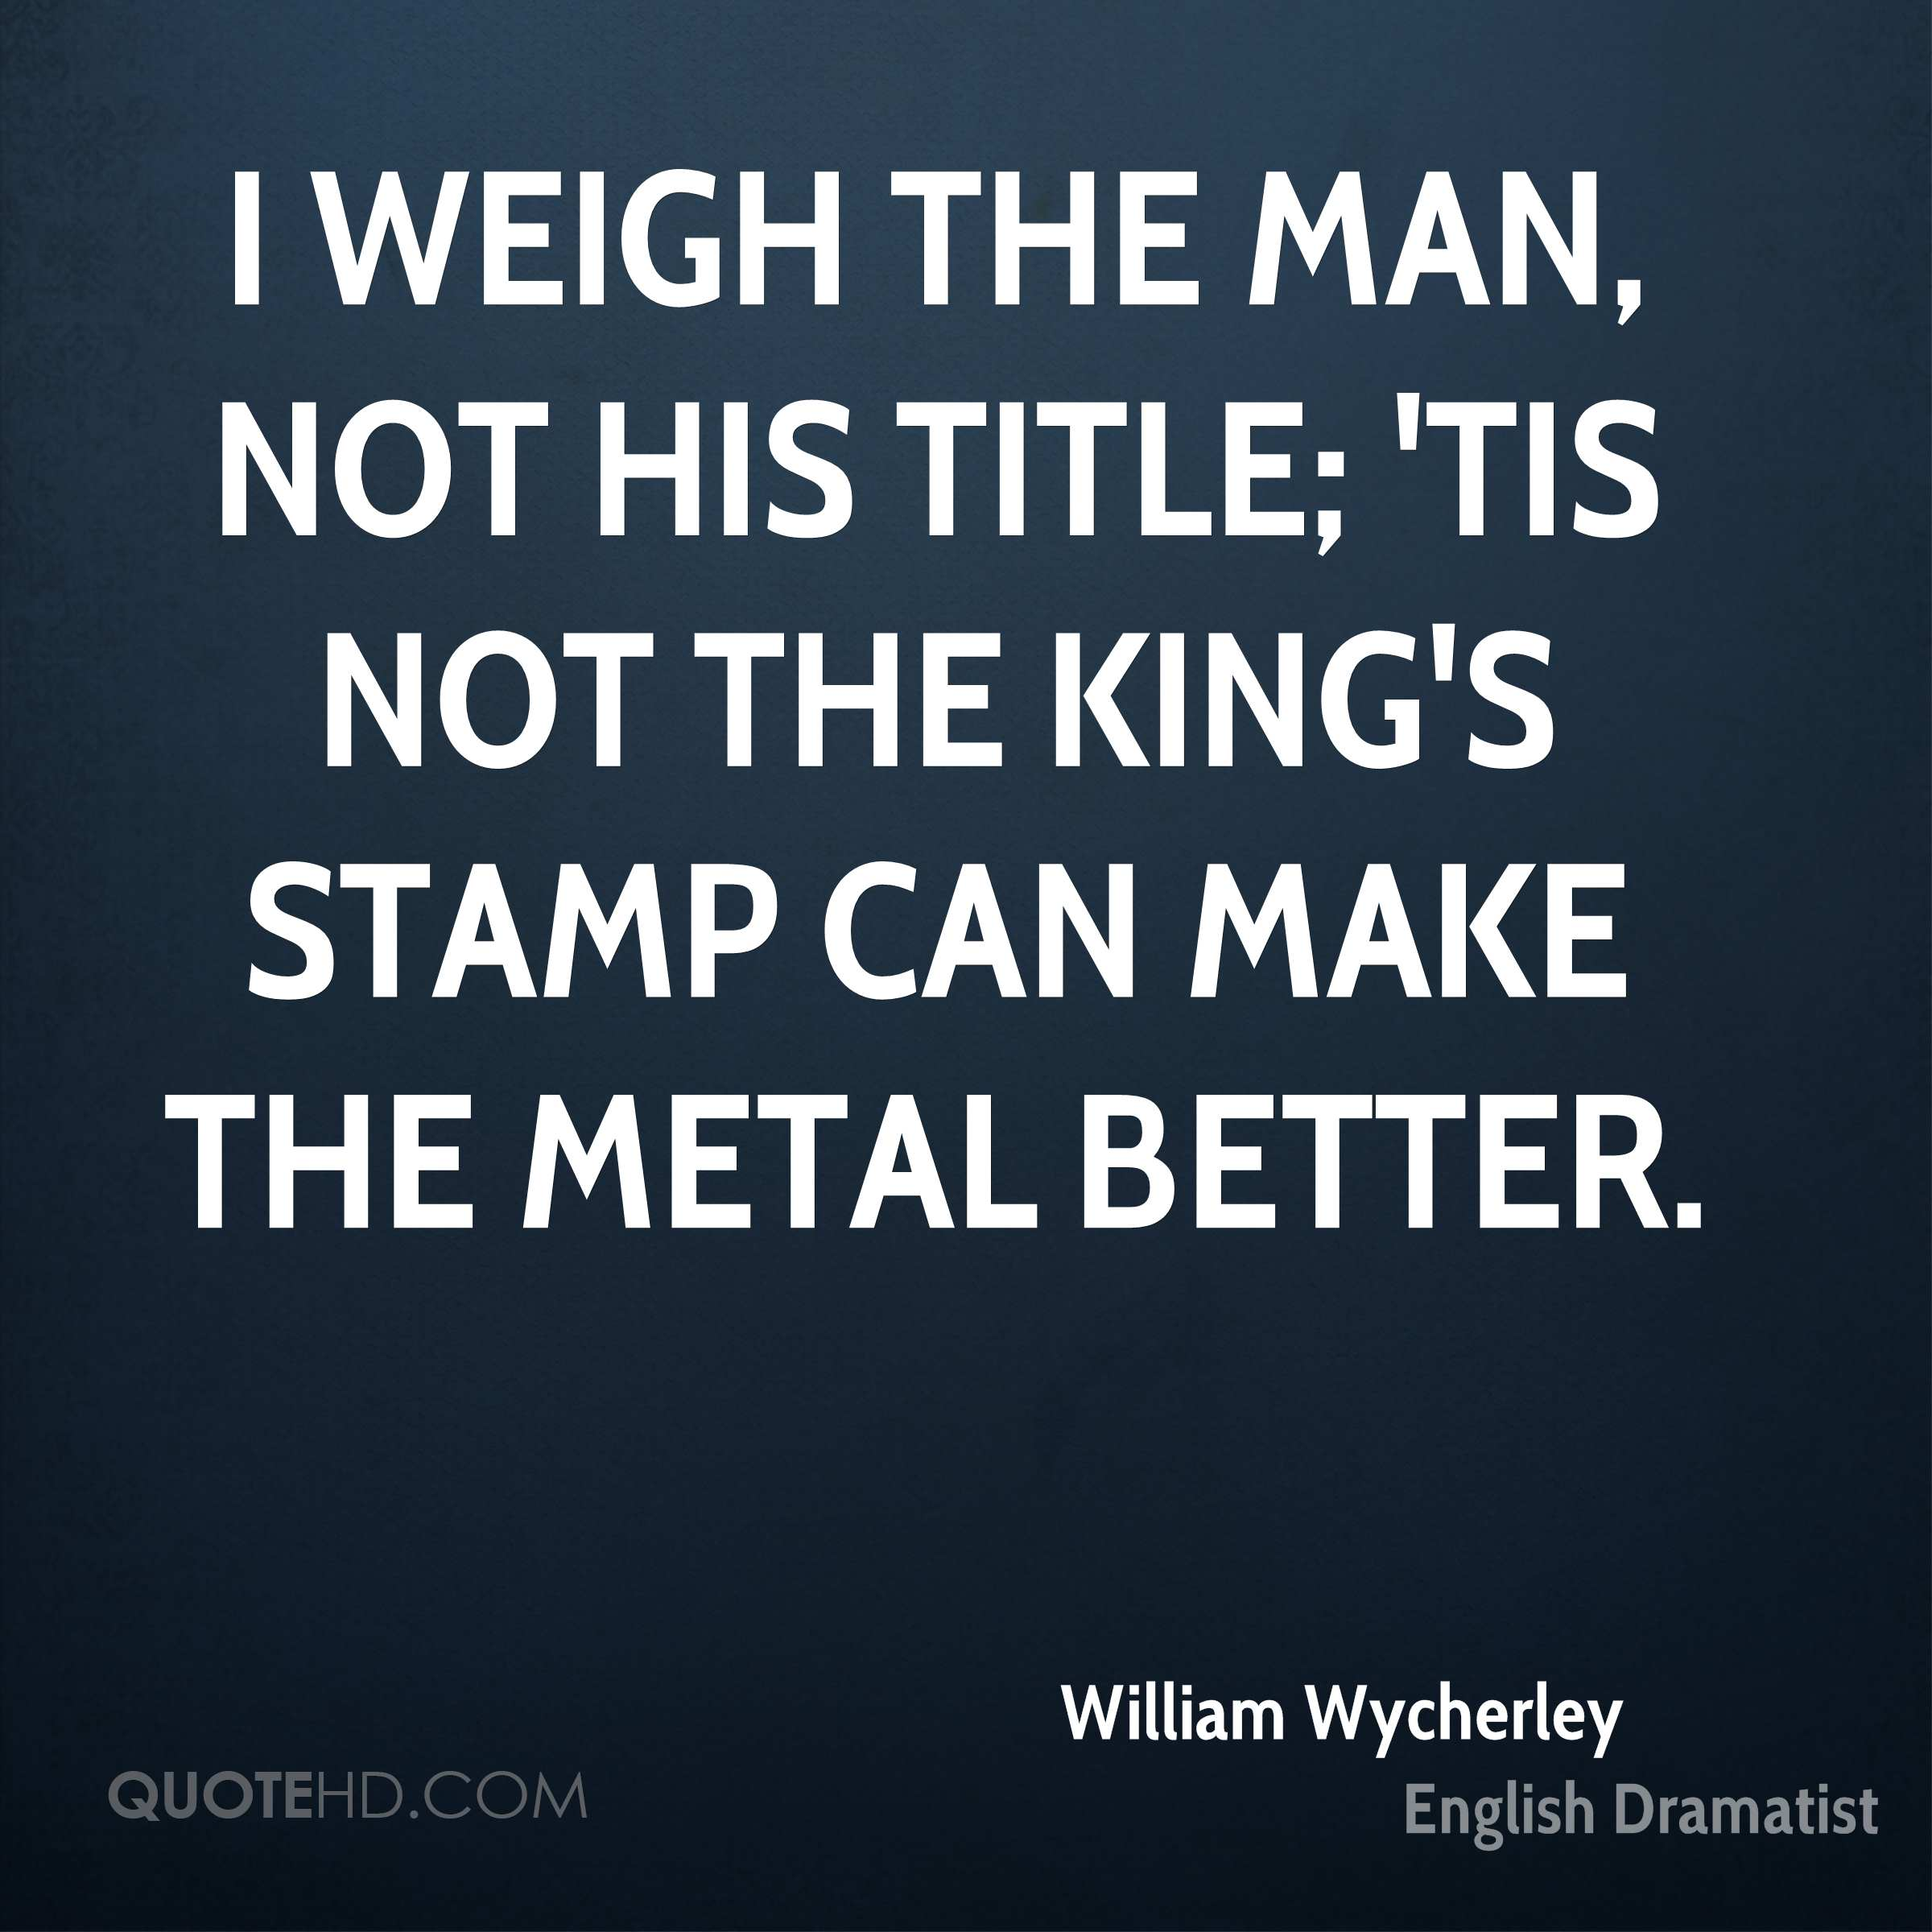 I weigh the man, not his title; 'tis not the king's stamp can make the metal better.